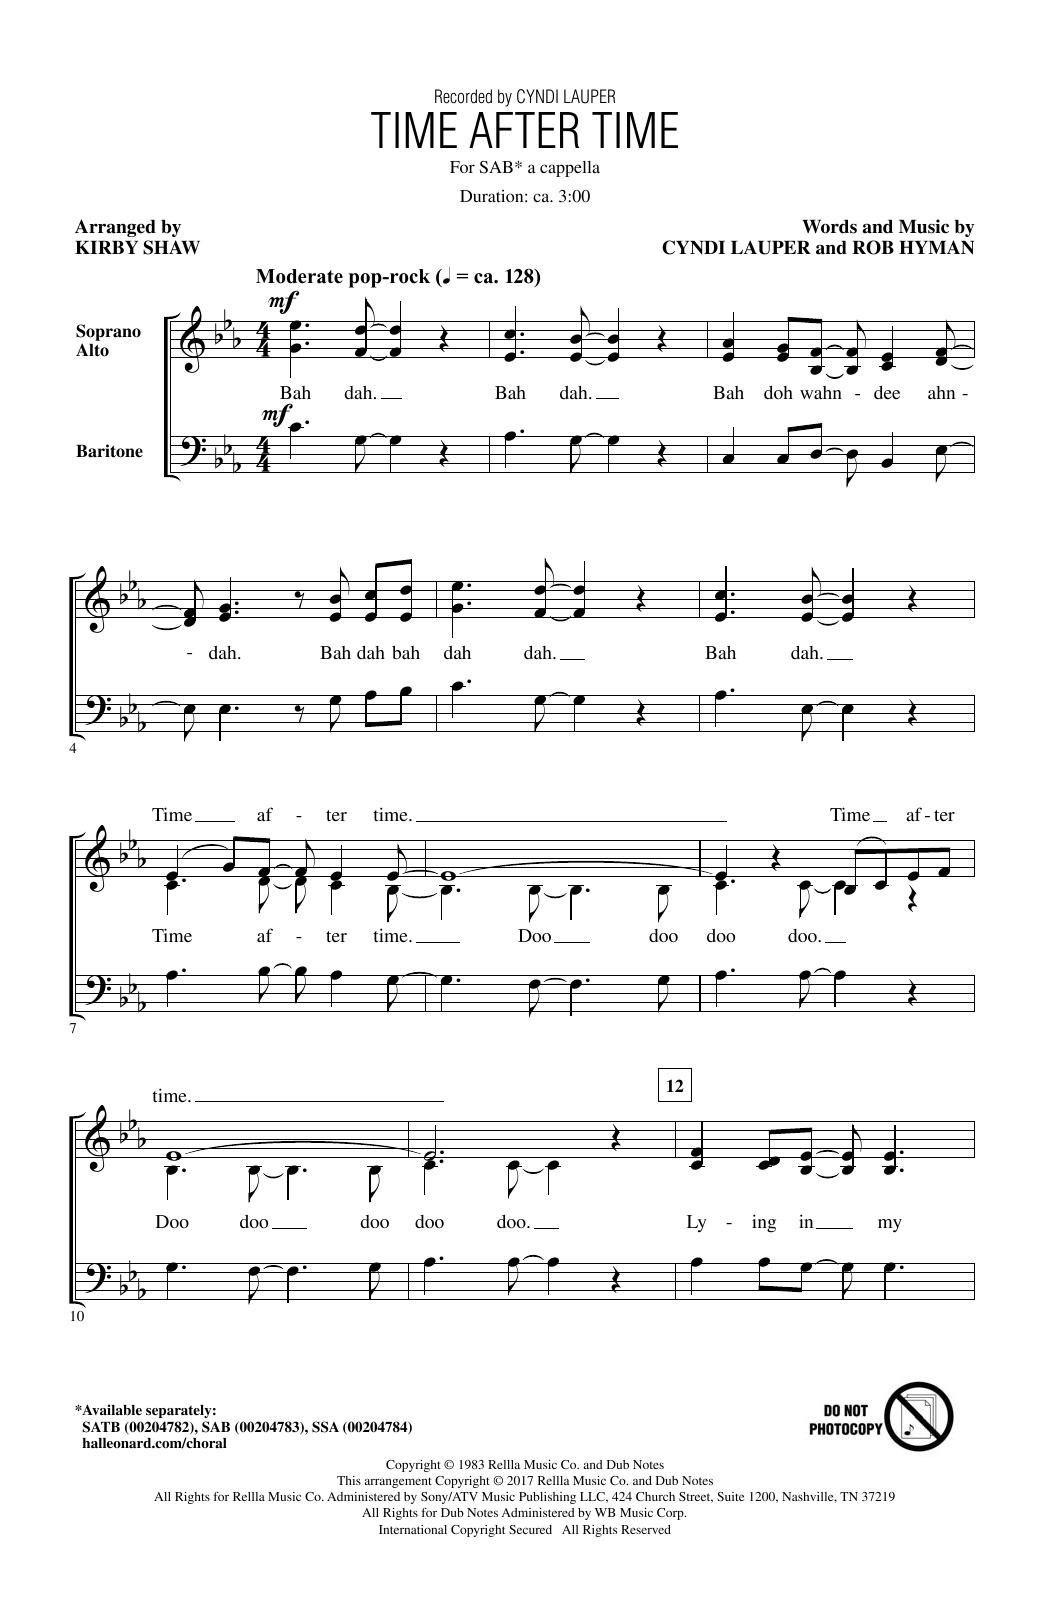 Cyndi Lauper Time After Time (arr. Kirby Shaw) sheet music notes and chords. Download Printable PDF.